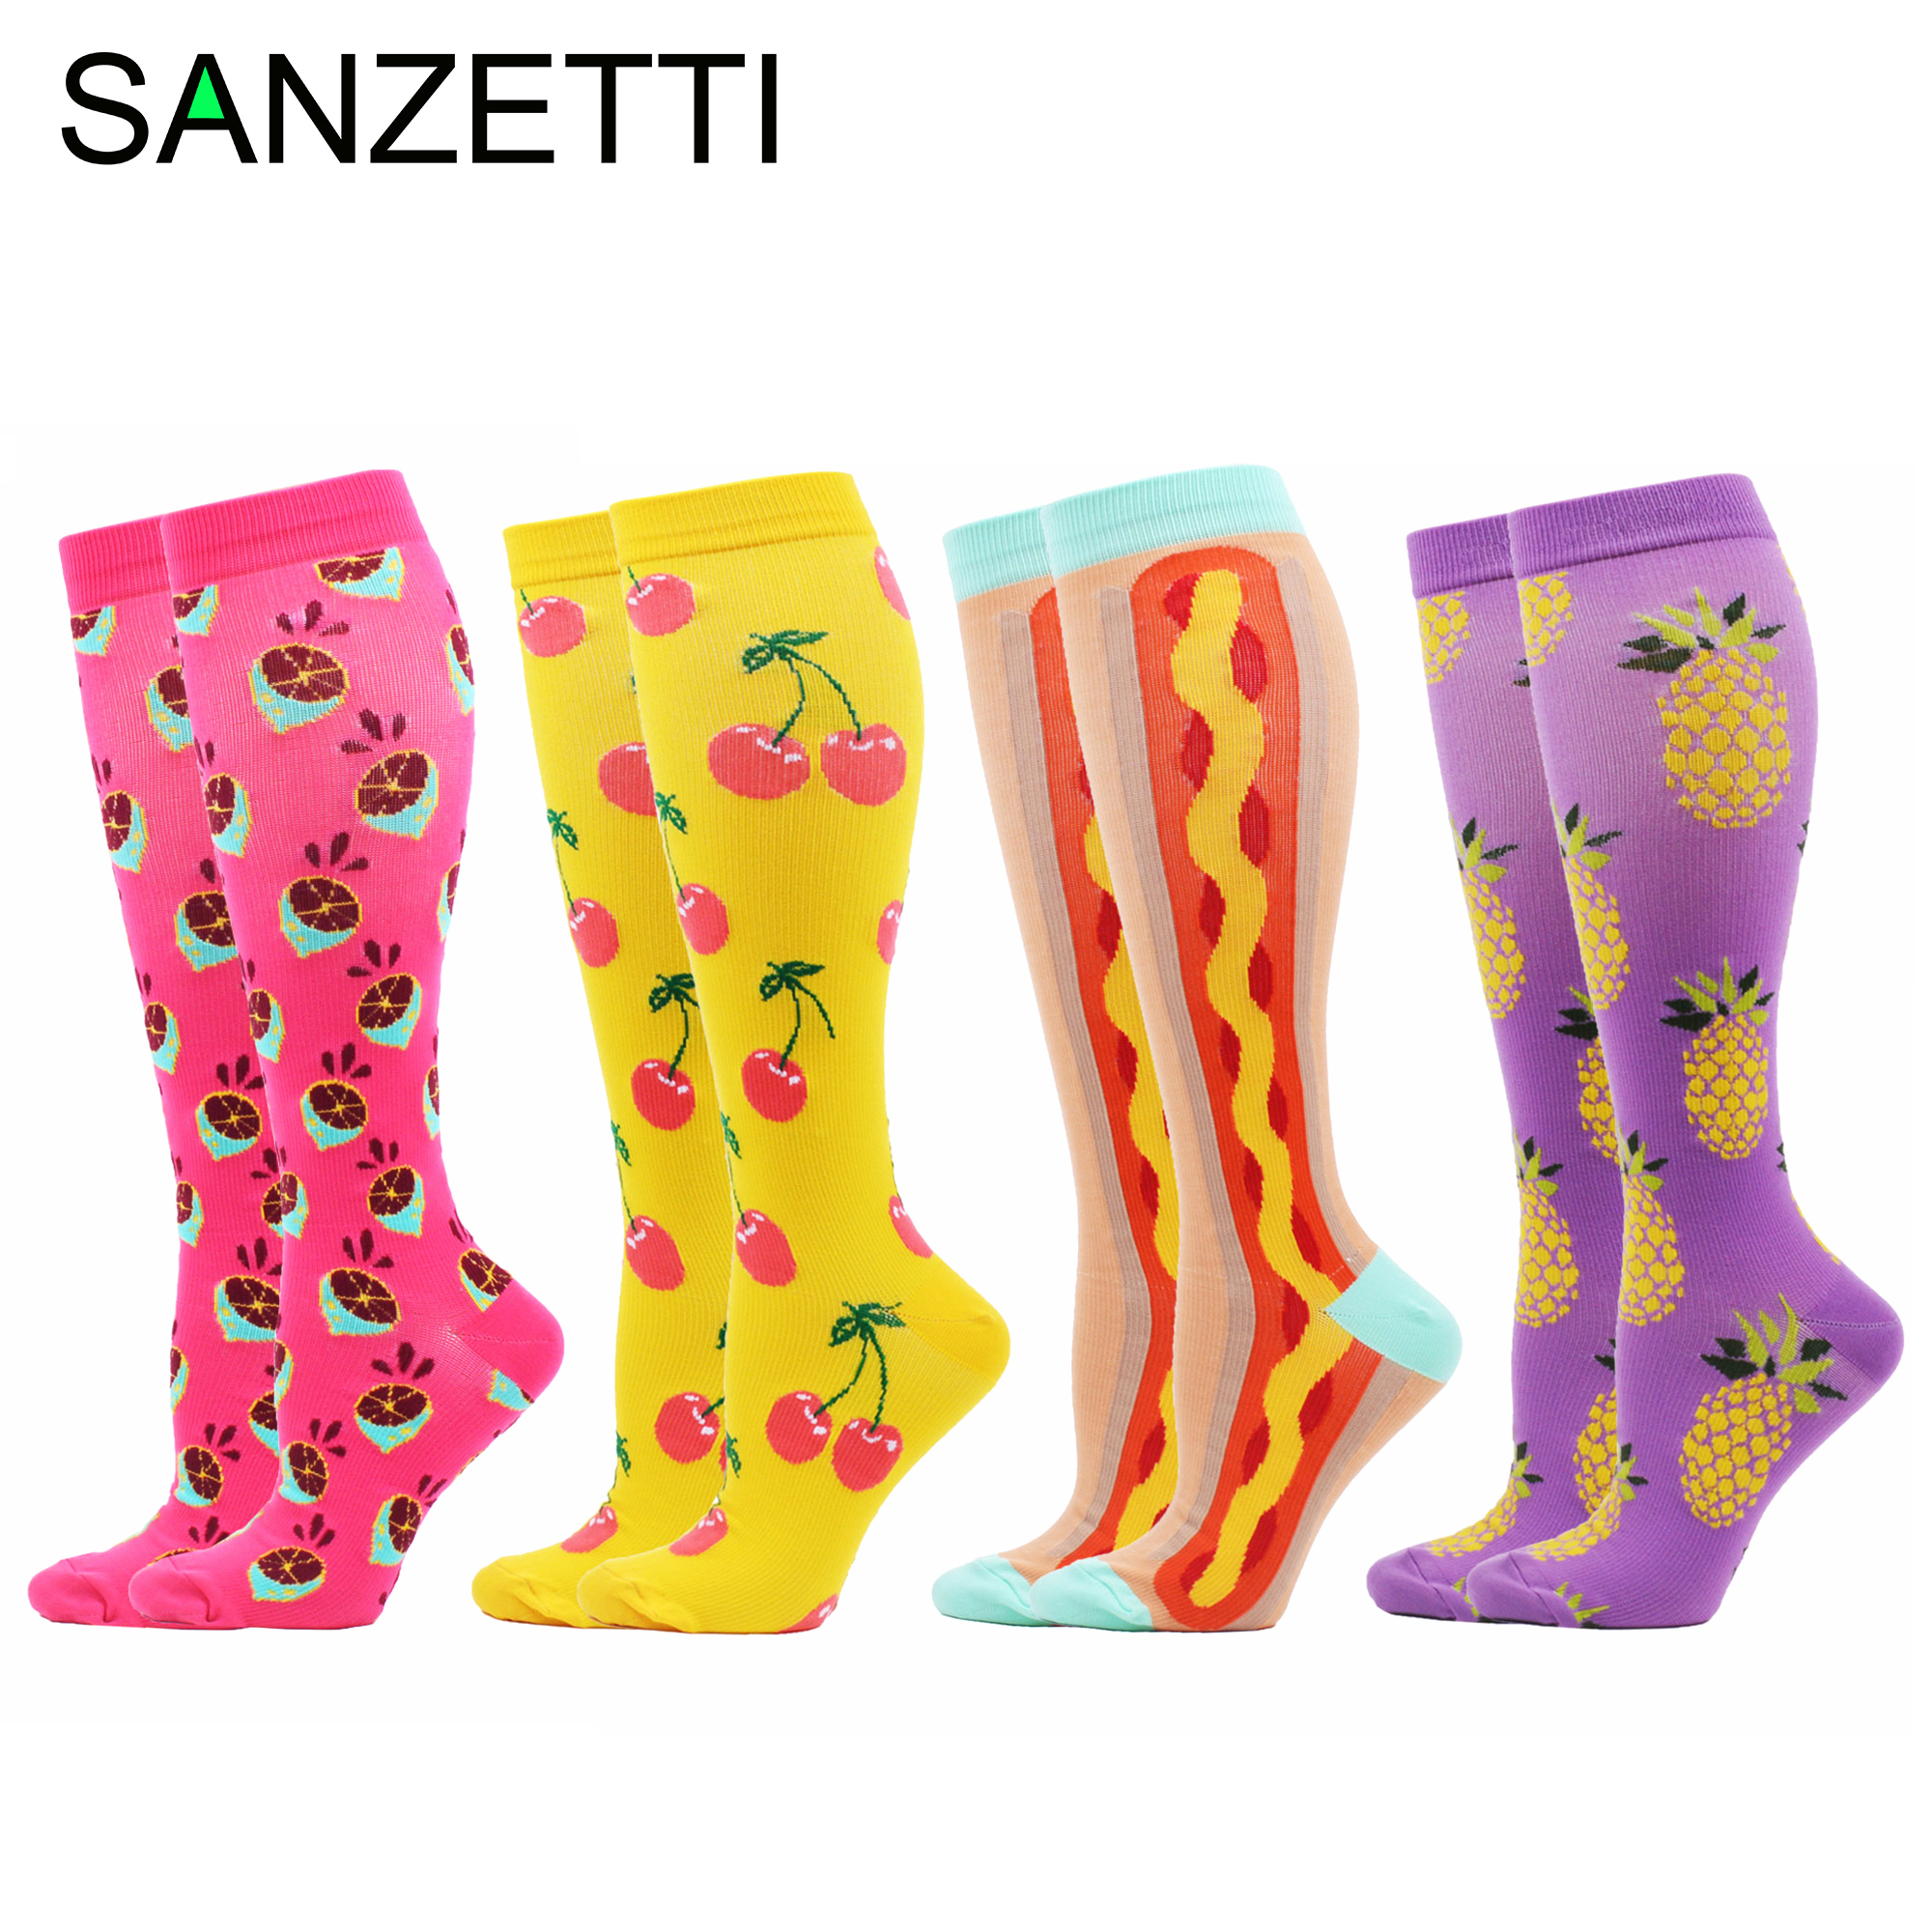 SANZETTI 4 Pairs/Lot Women Casual Pattern Combed Cotton Compression Socks Below Knee Anti-Fatigue Long Colorful Fruit Socks